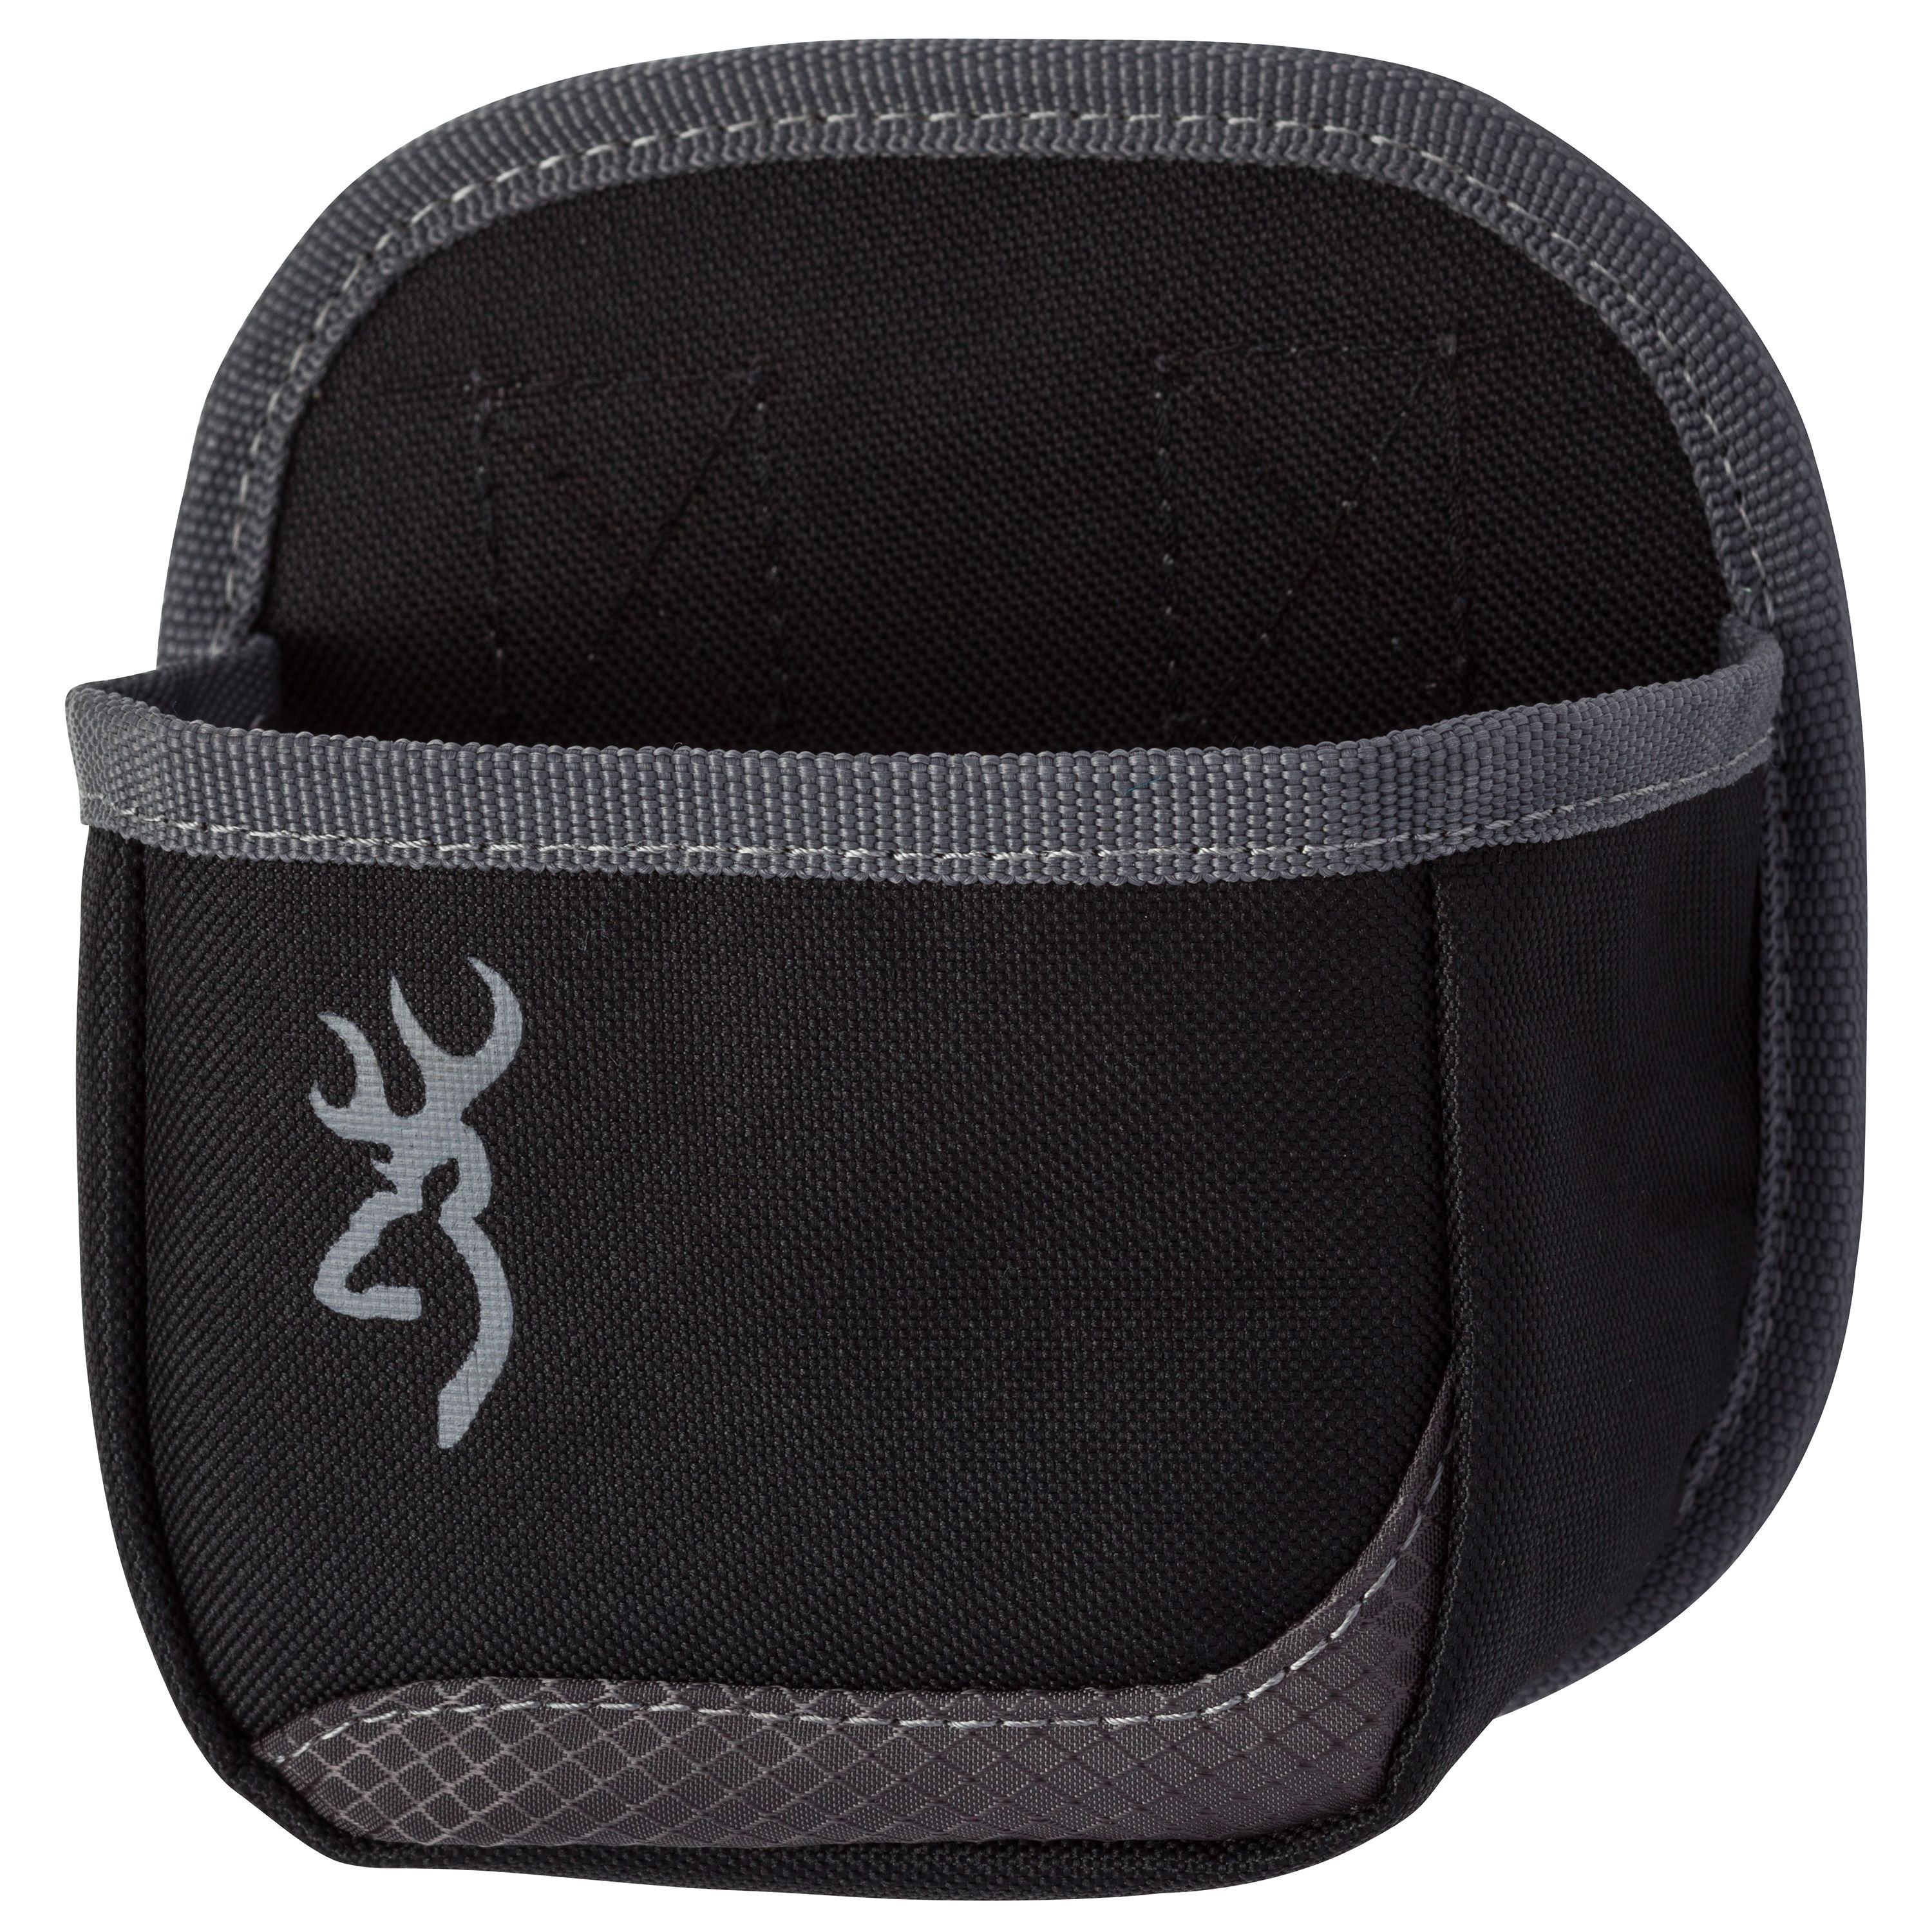 Browning Flash Shell Box Carrier, Black/Gray